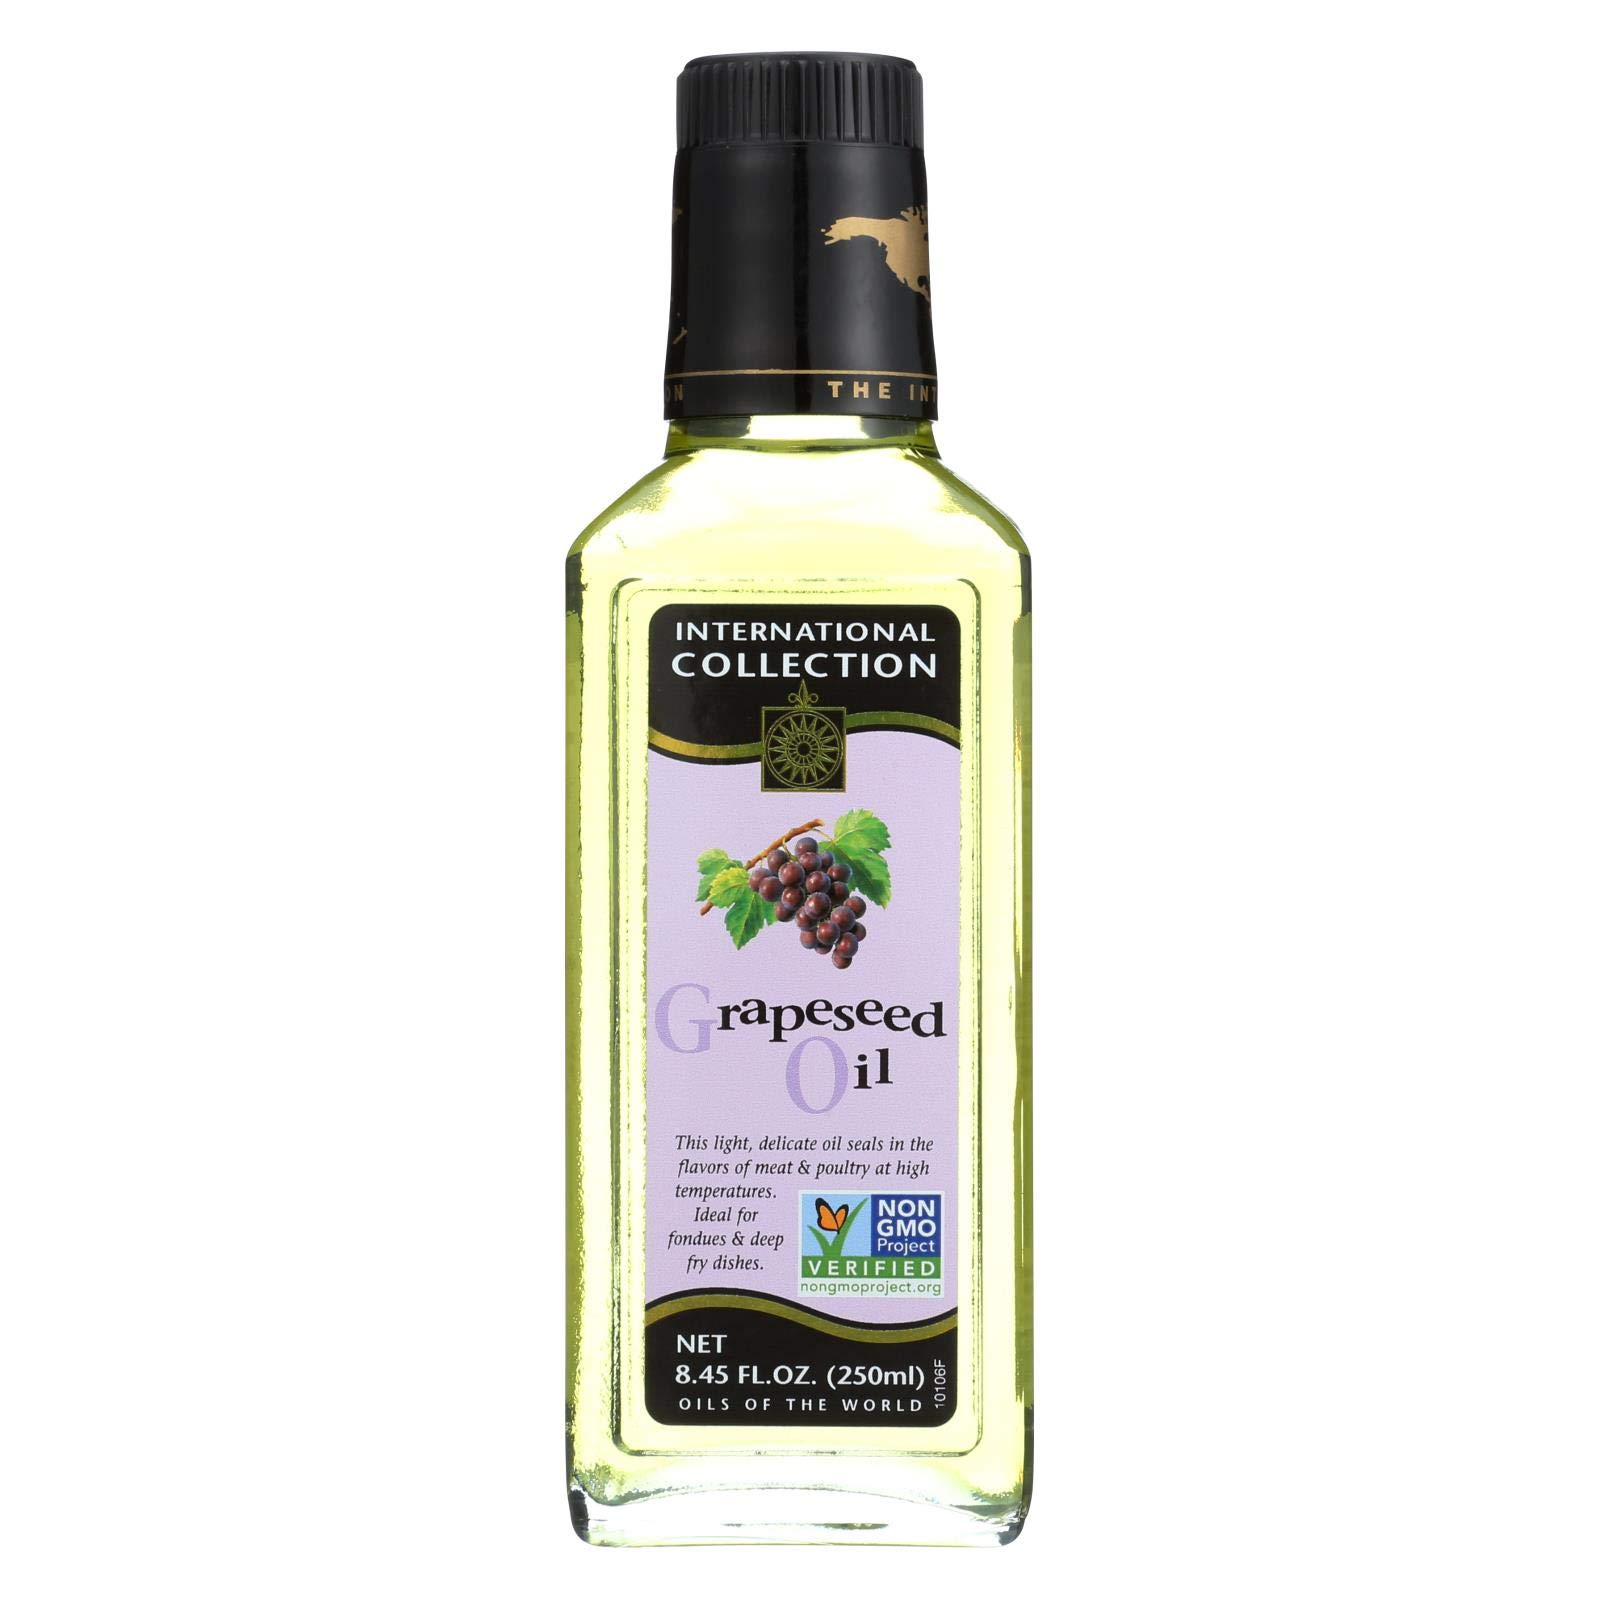 Internation Collection Grapeseed Oil, 8.45 Oz - 6 Per Case. by International Collection